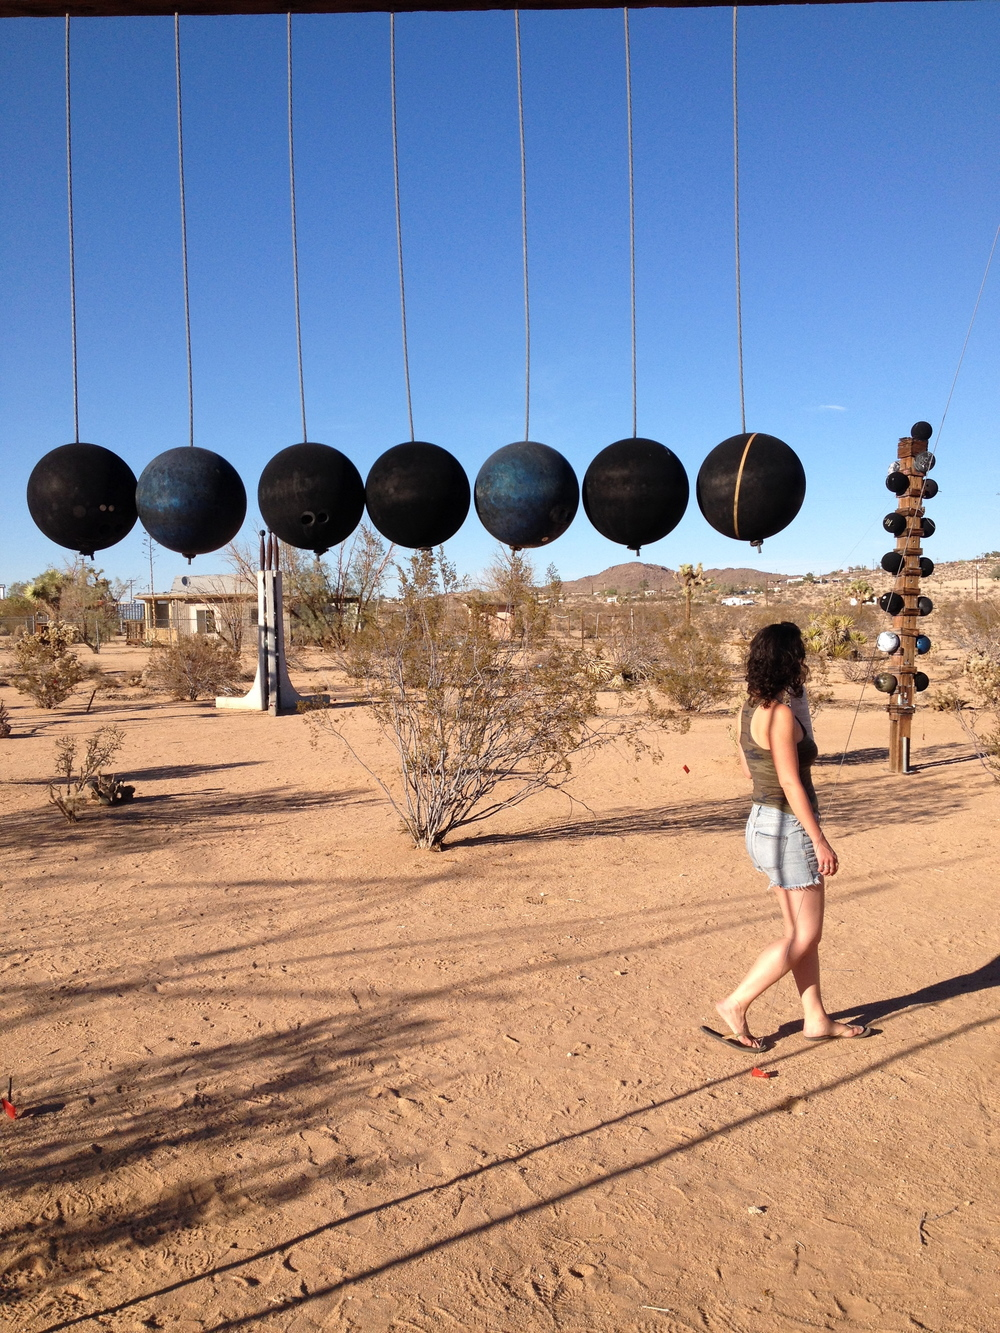 checked out Noah Purifoy's sculptures in Joshua Tree